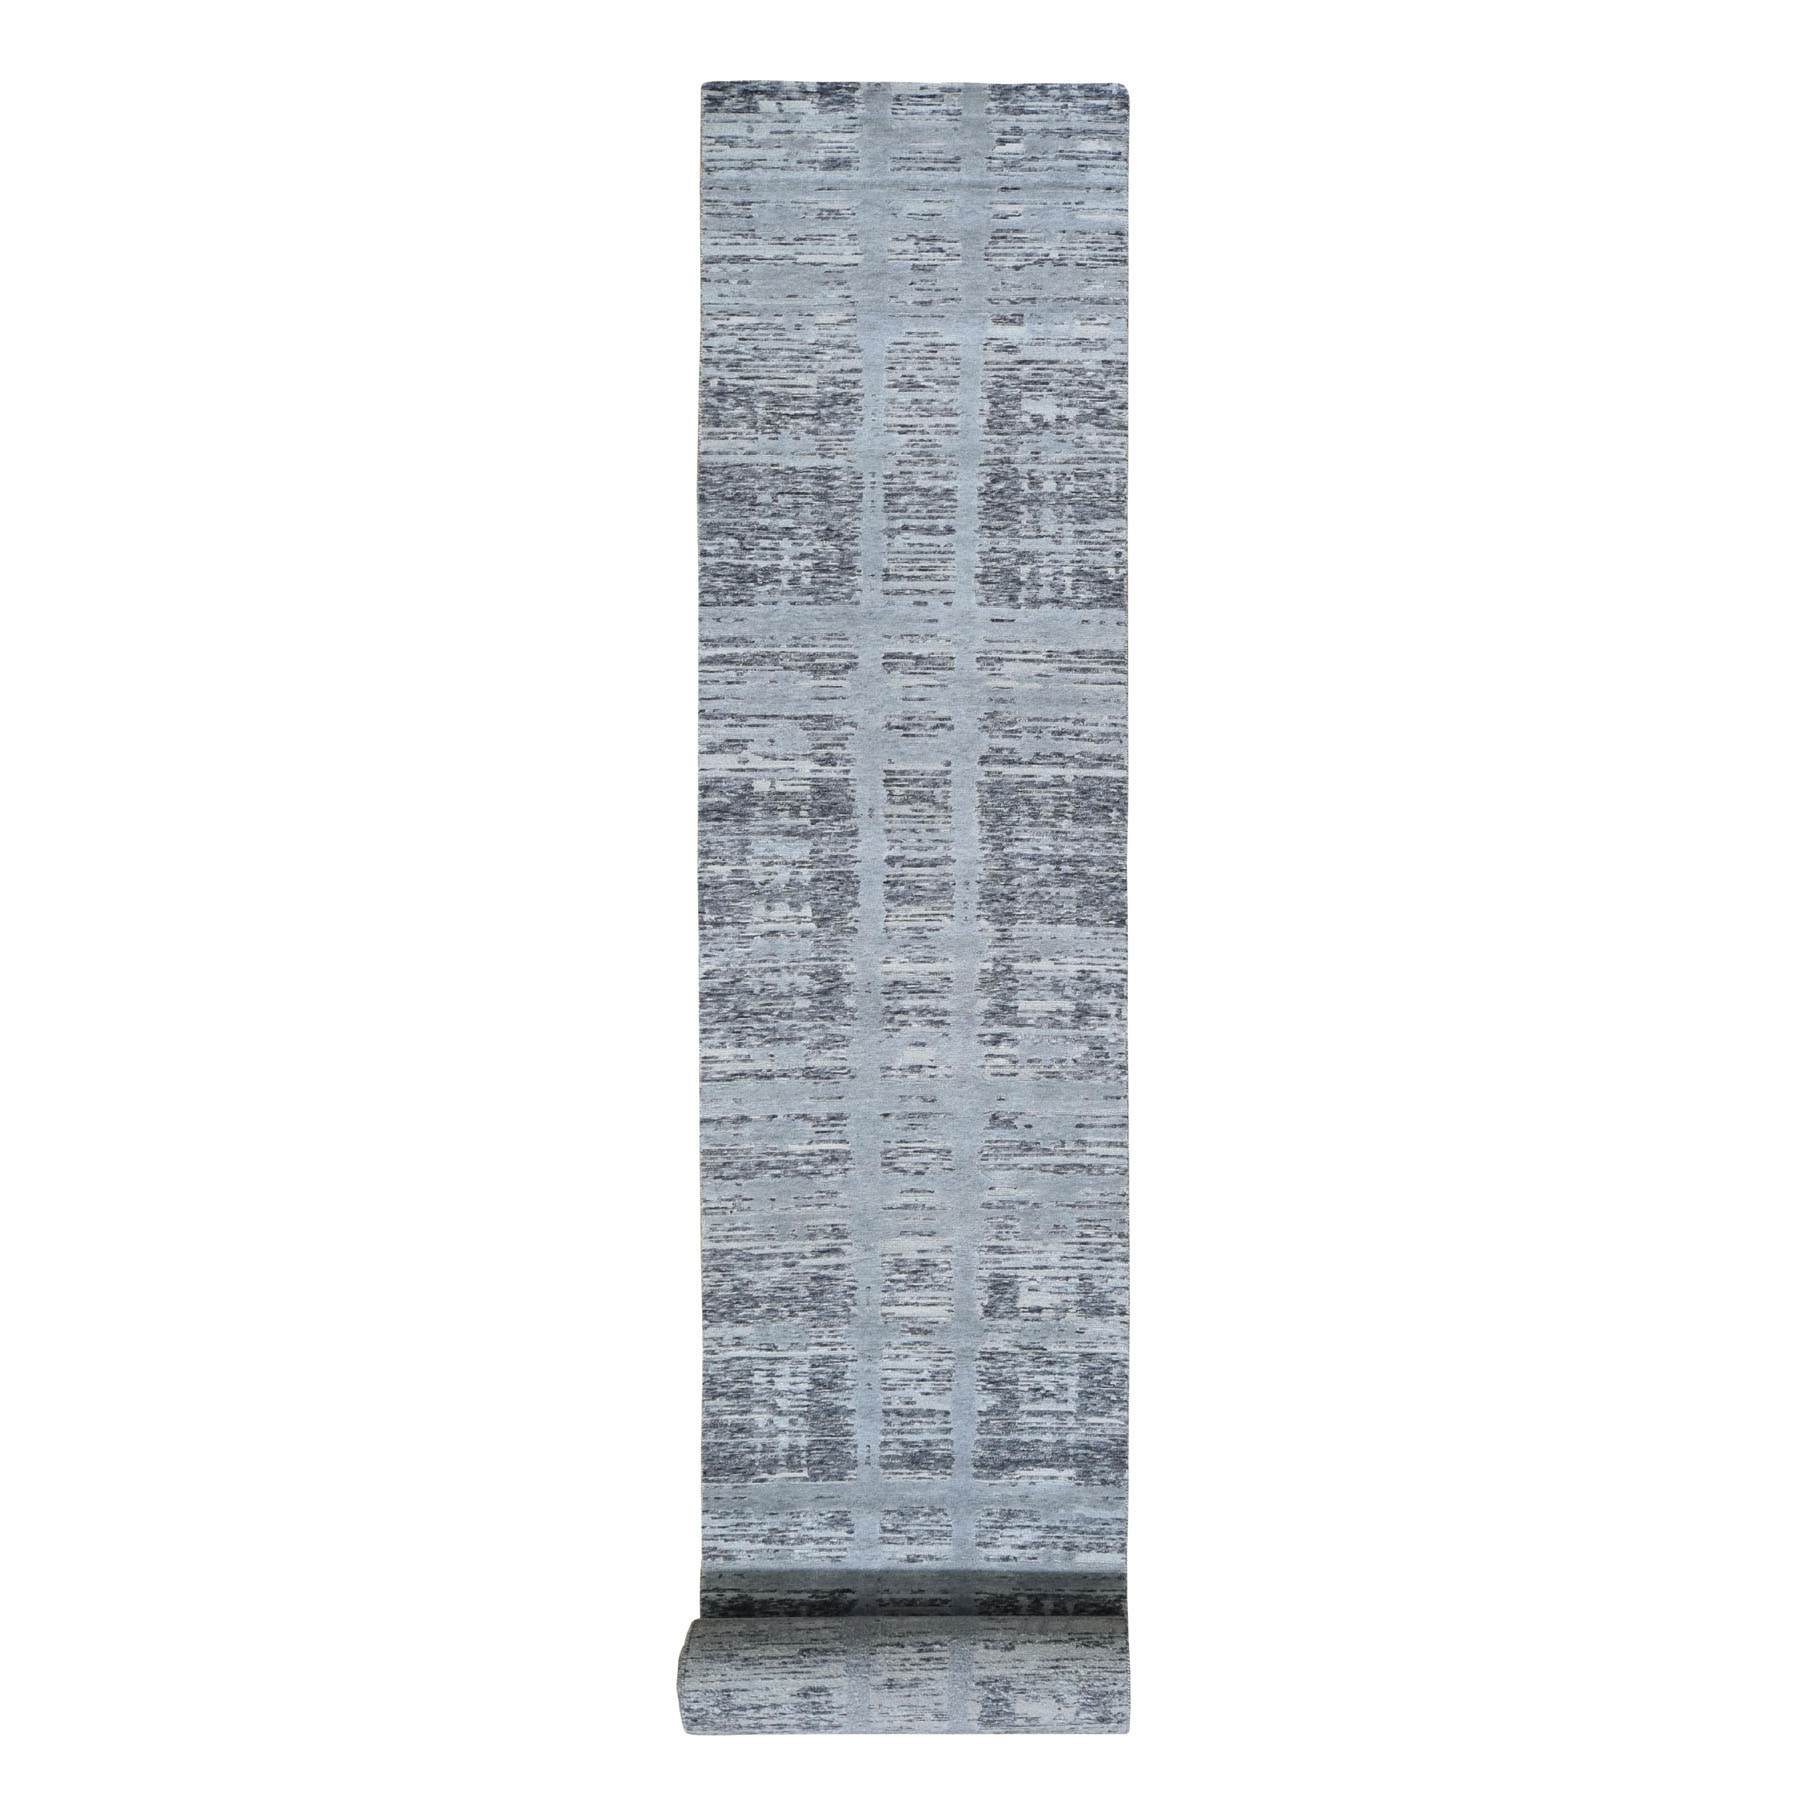 modern & contemporary rugs LUV431073